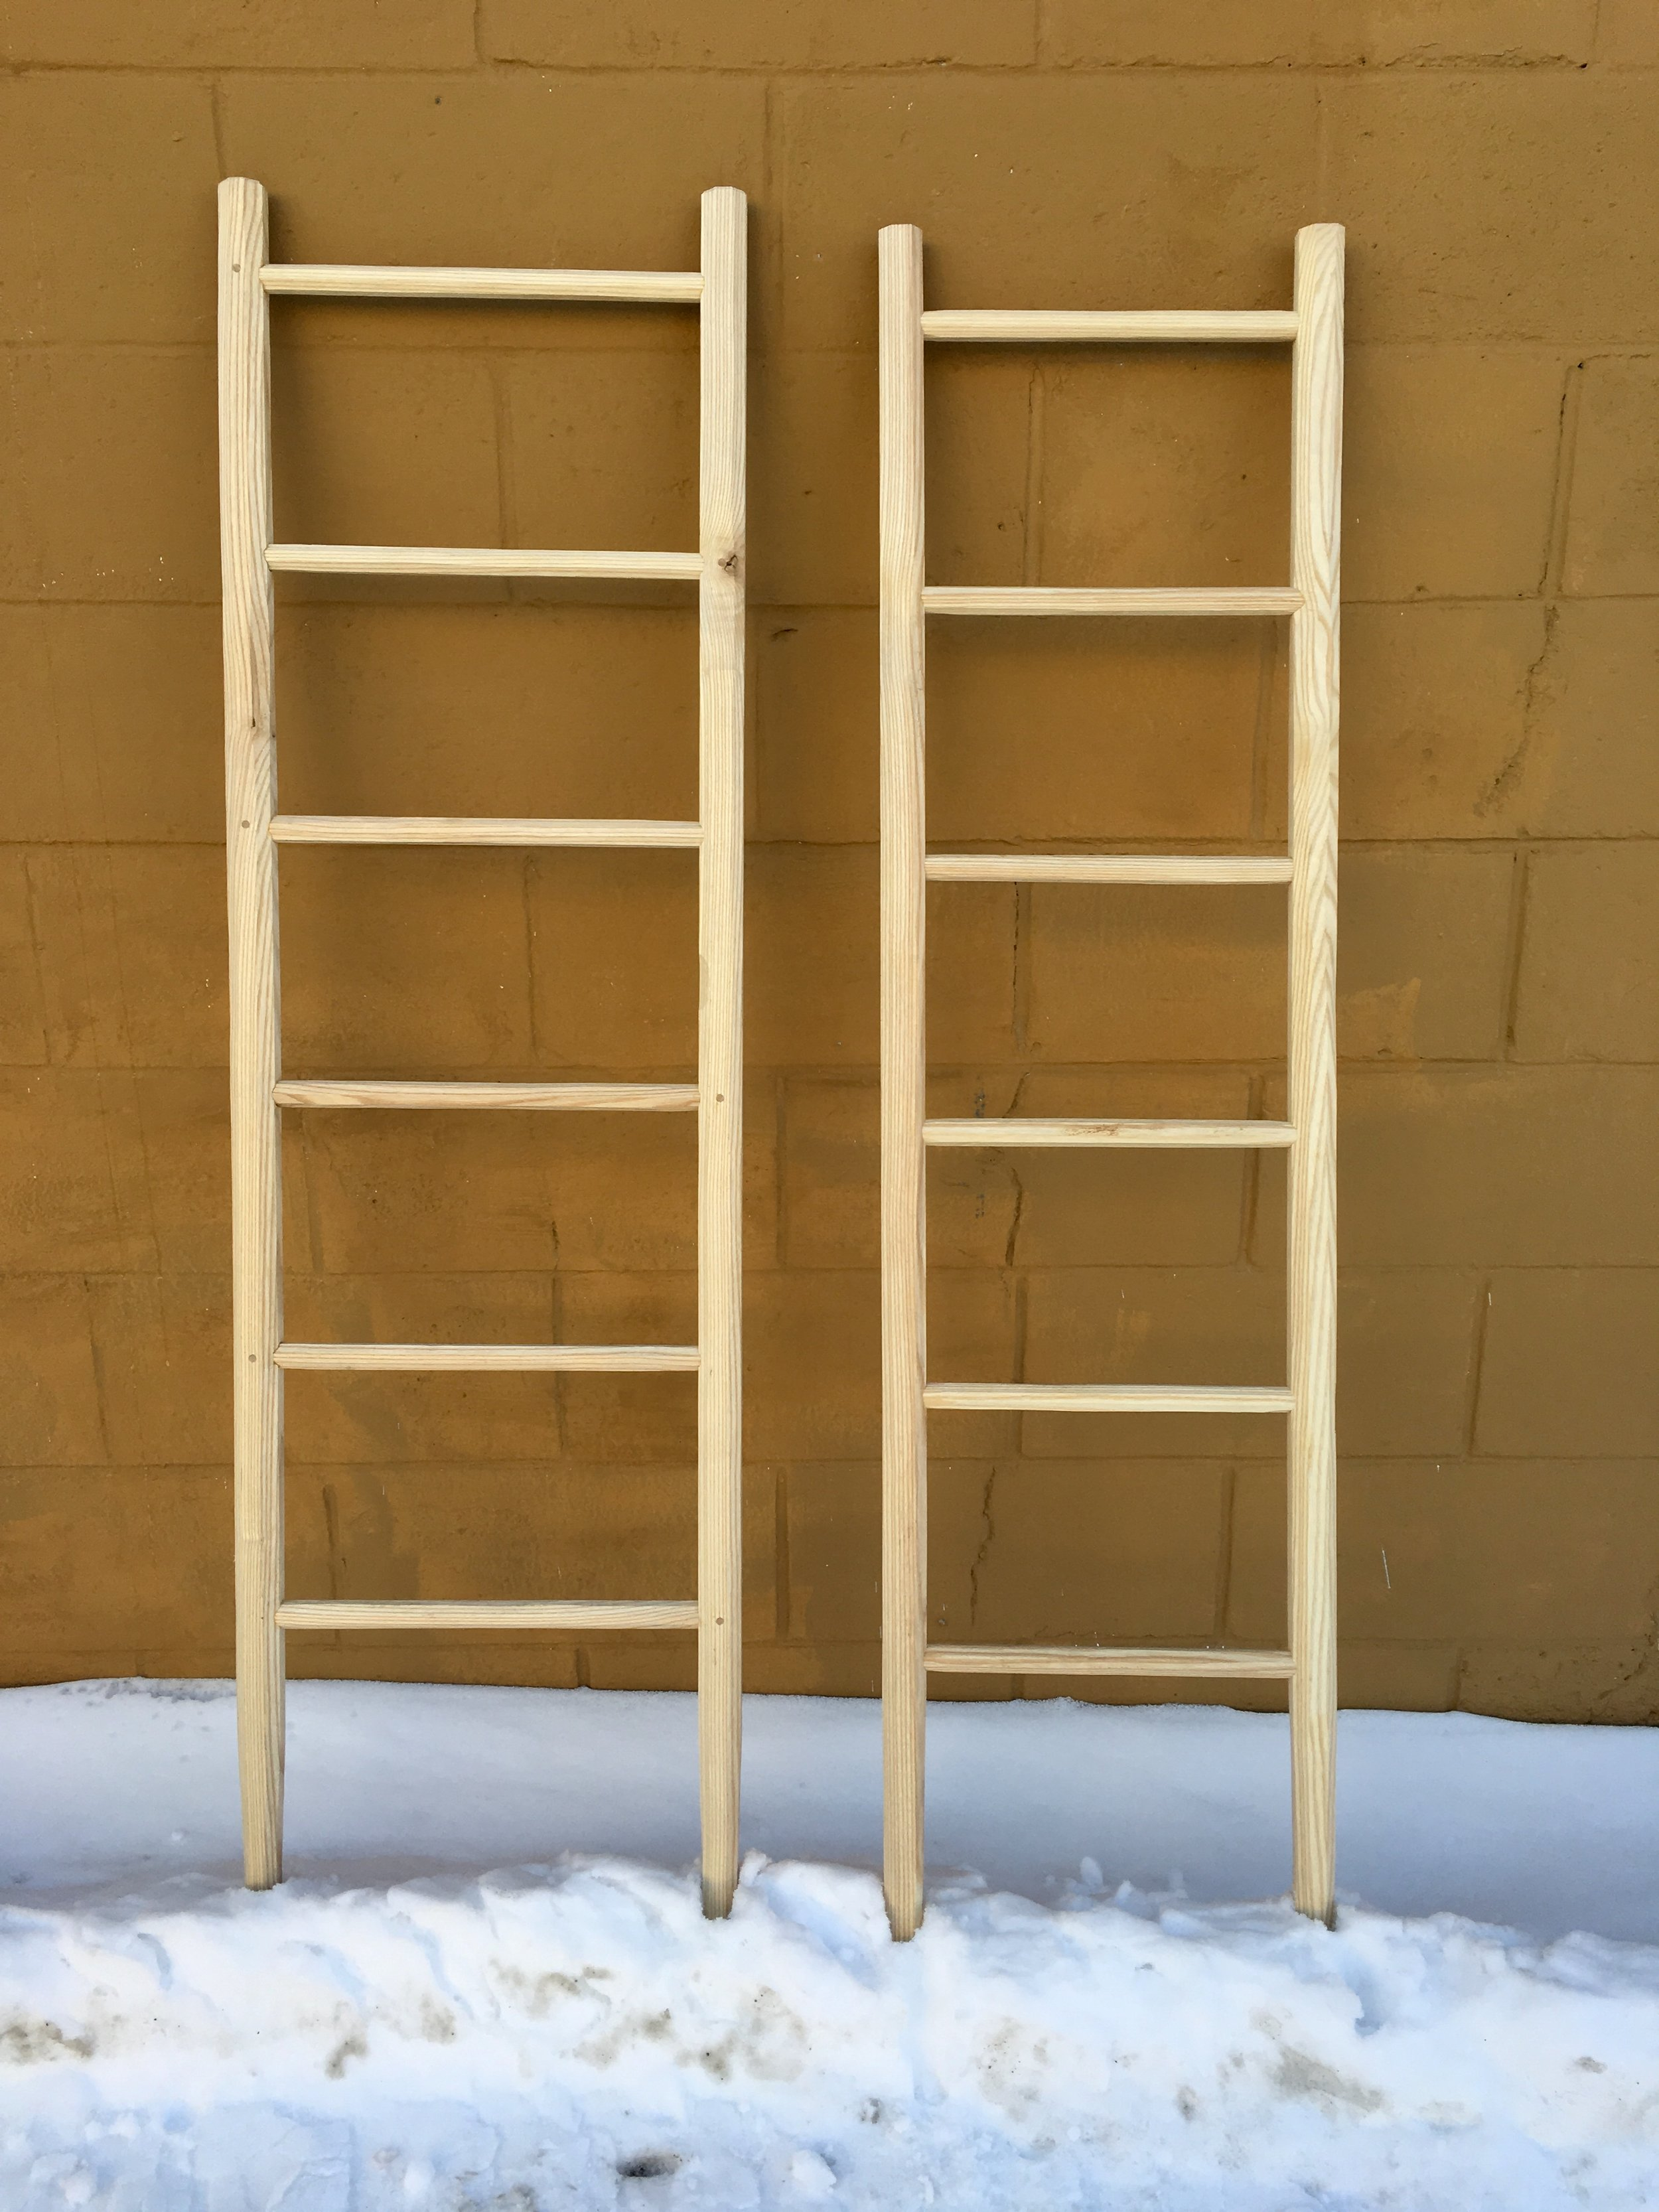 Ash ladders made in collaboration with Skyler Hawkins, 2019.